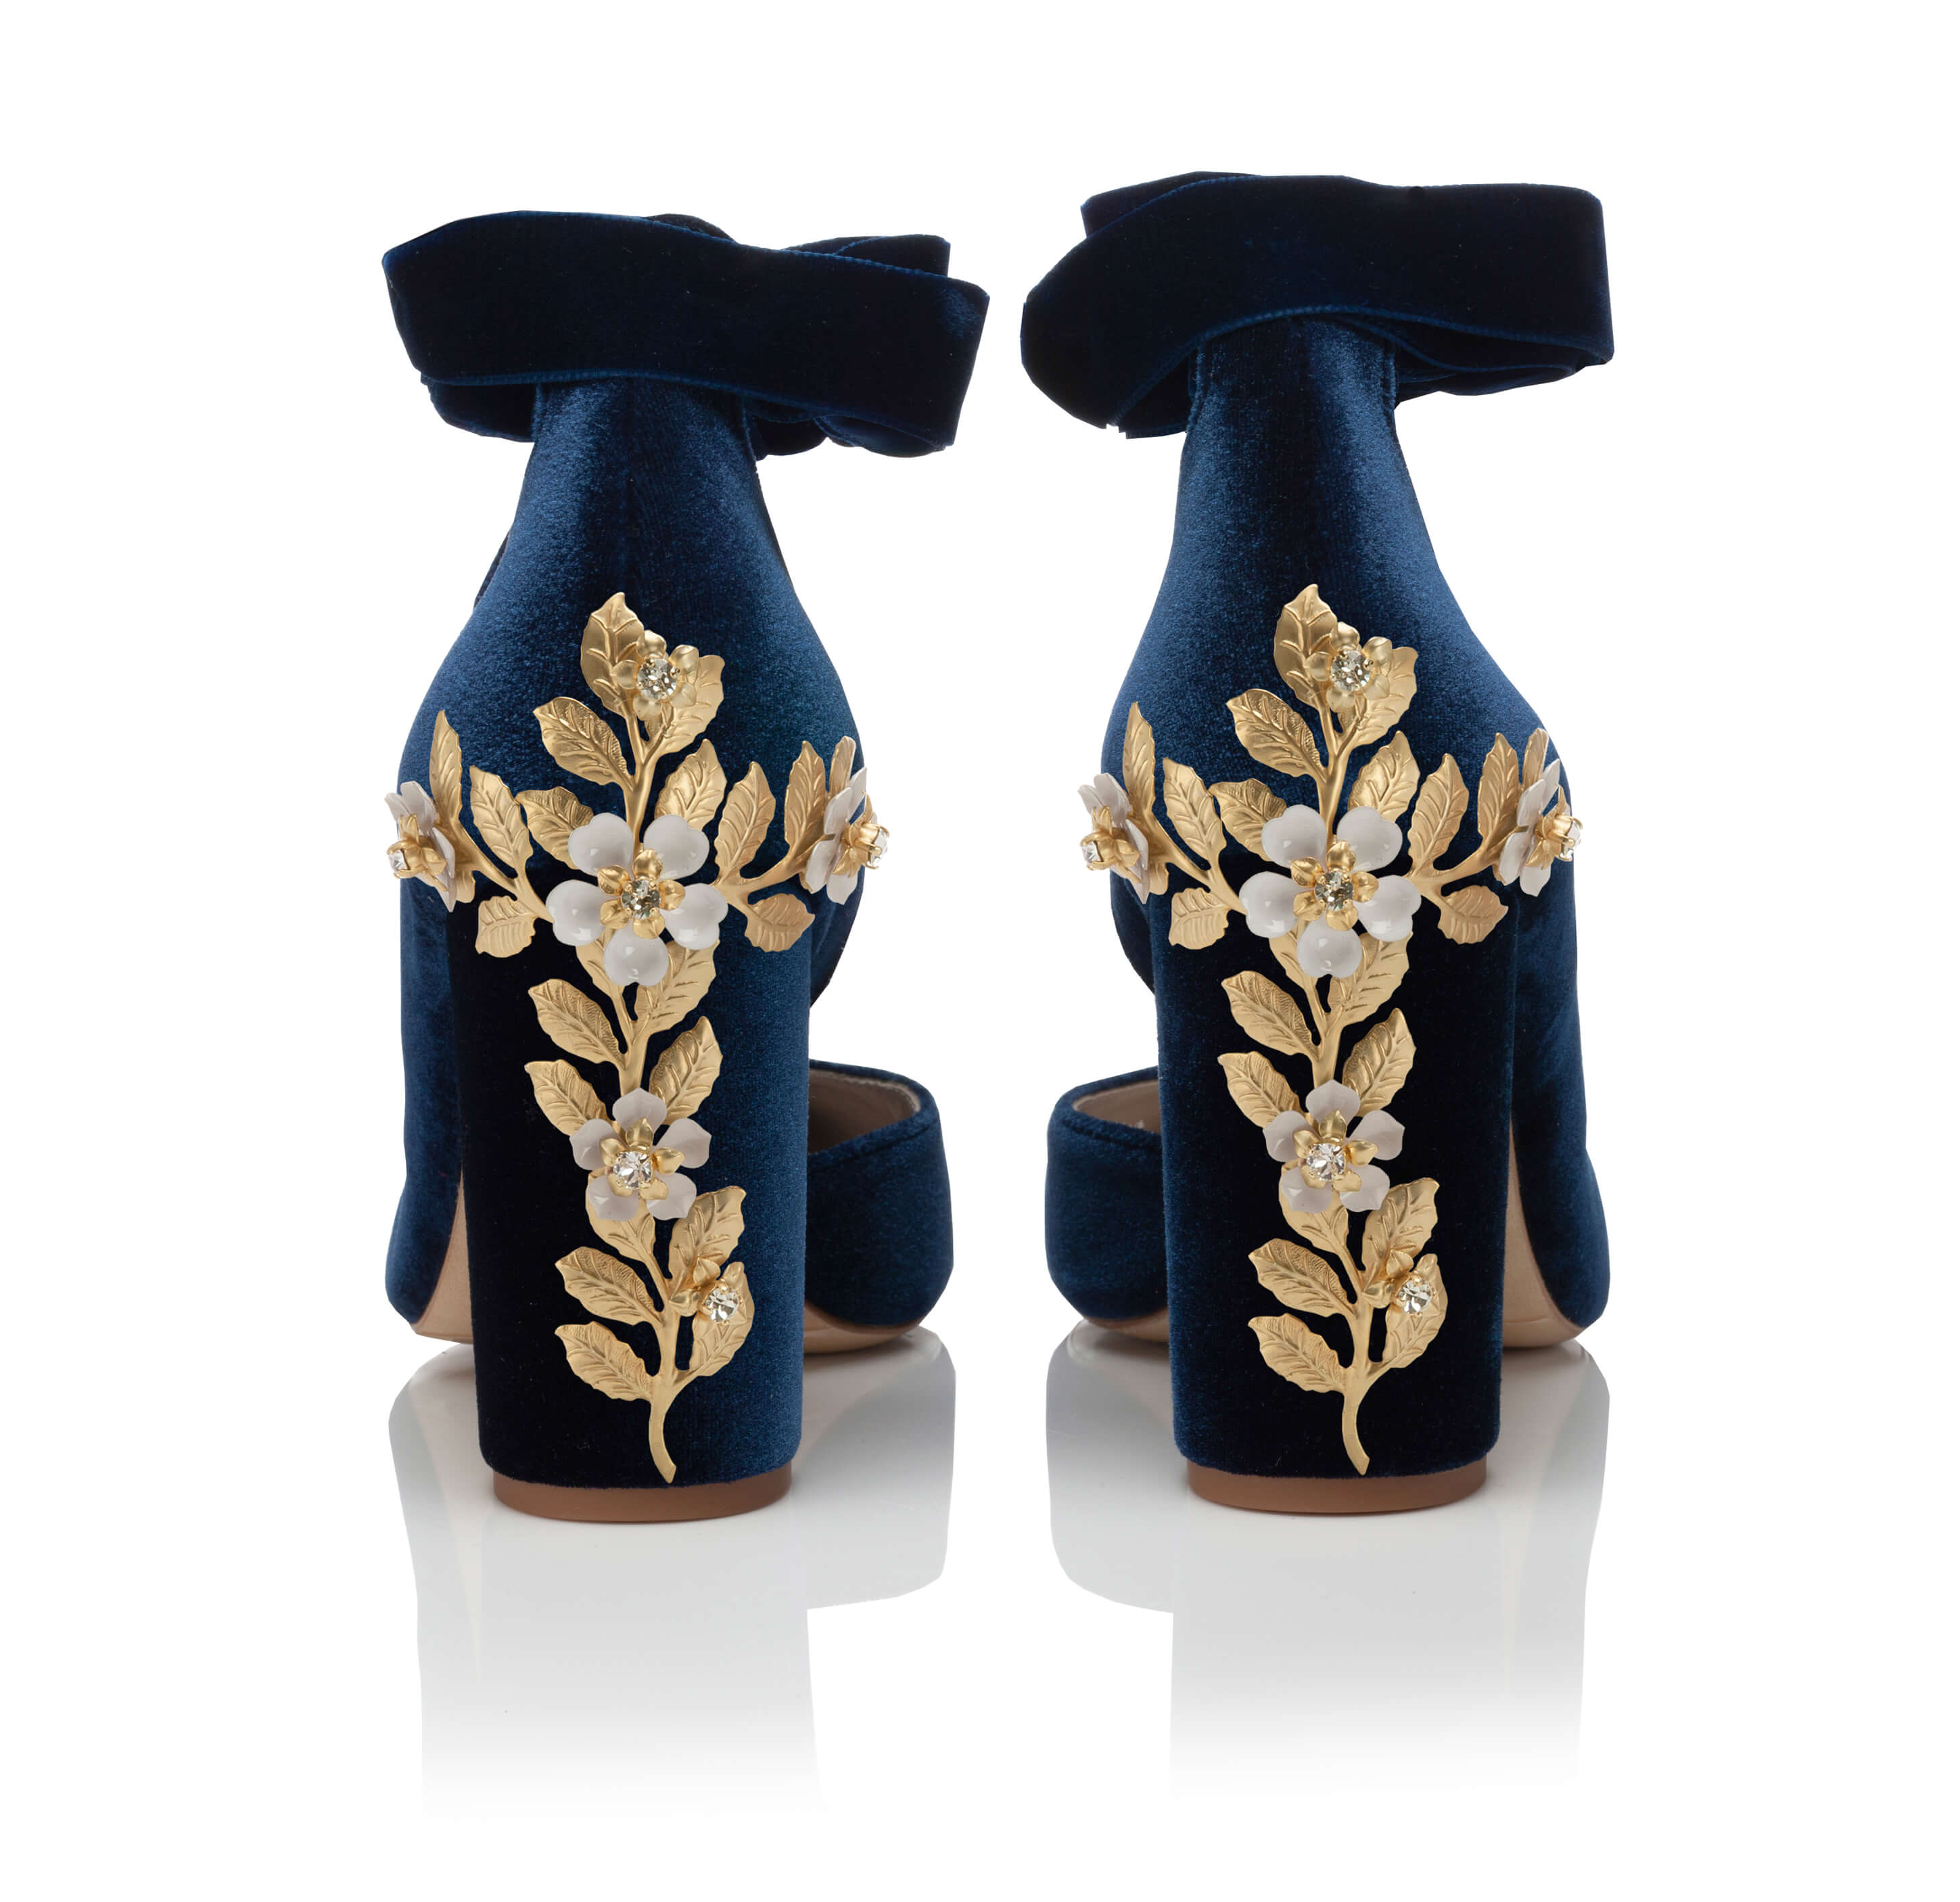 Hetty Midnight - Hetty Midnight Blossom Gold